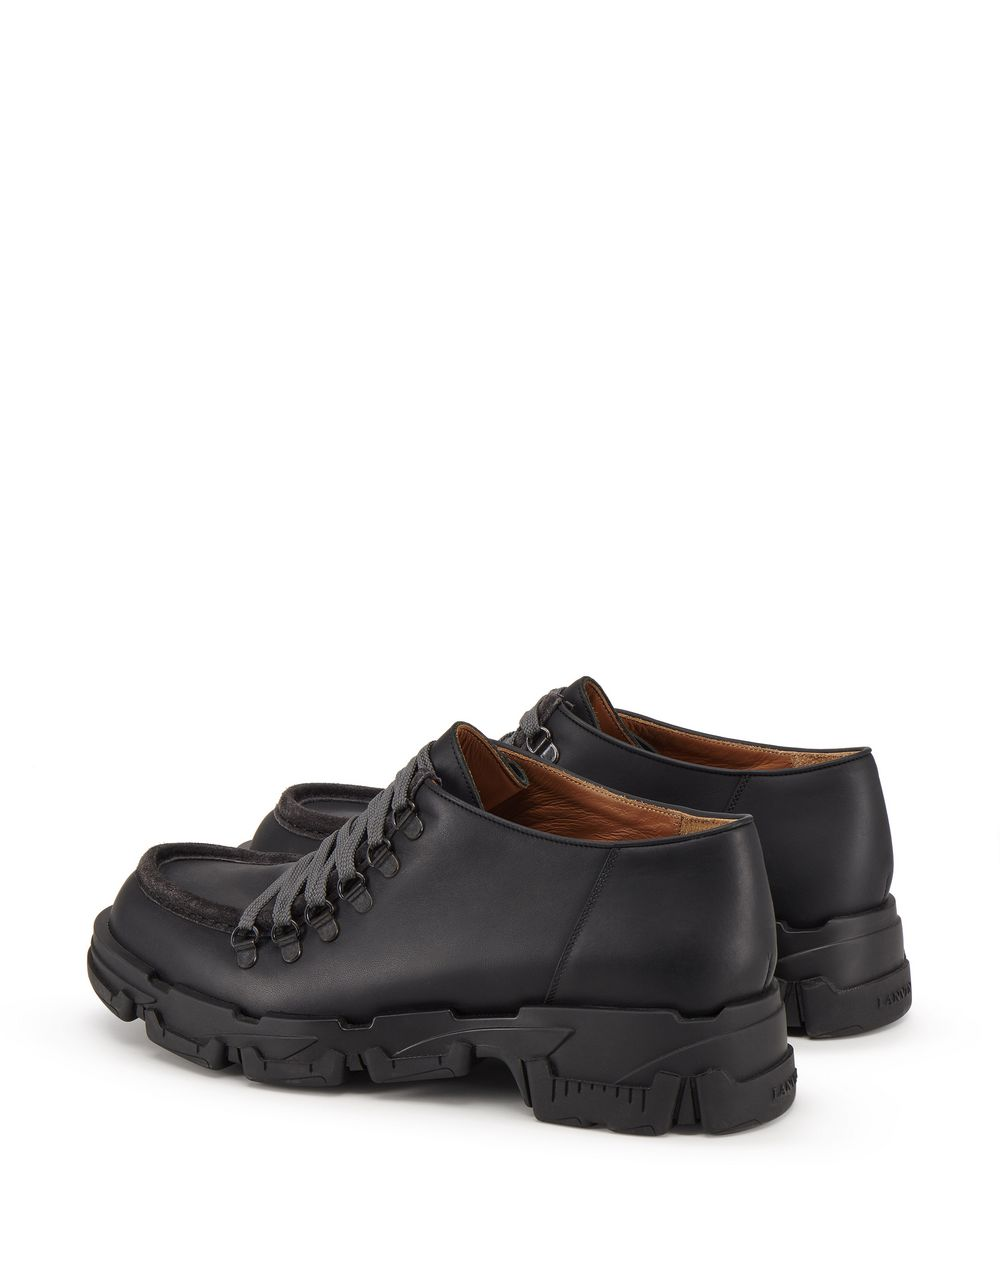 MATTE CALFSKIN LEATHER EXPLORER DERBY SHOES WITH HOOK DETAILS - Lanvin